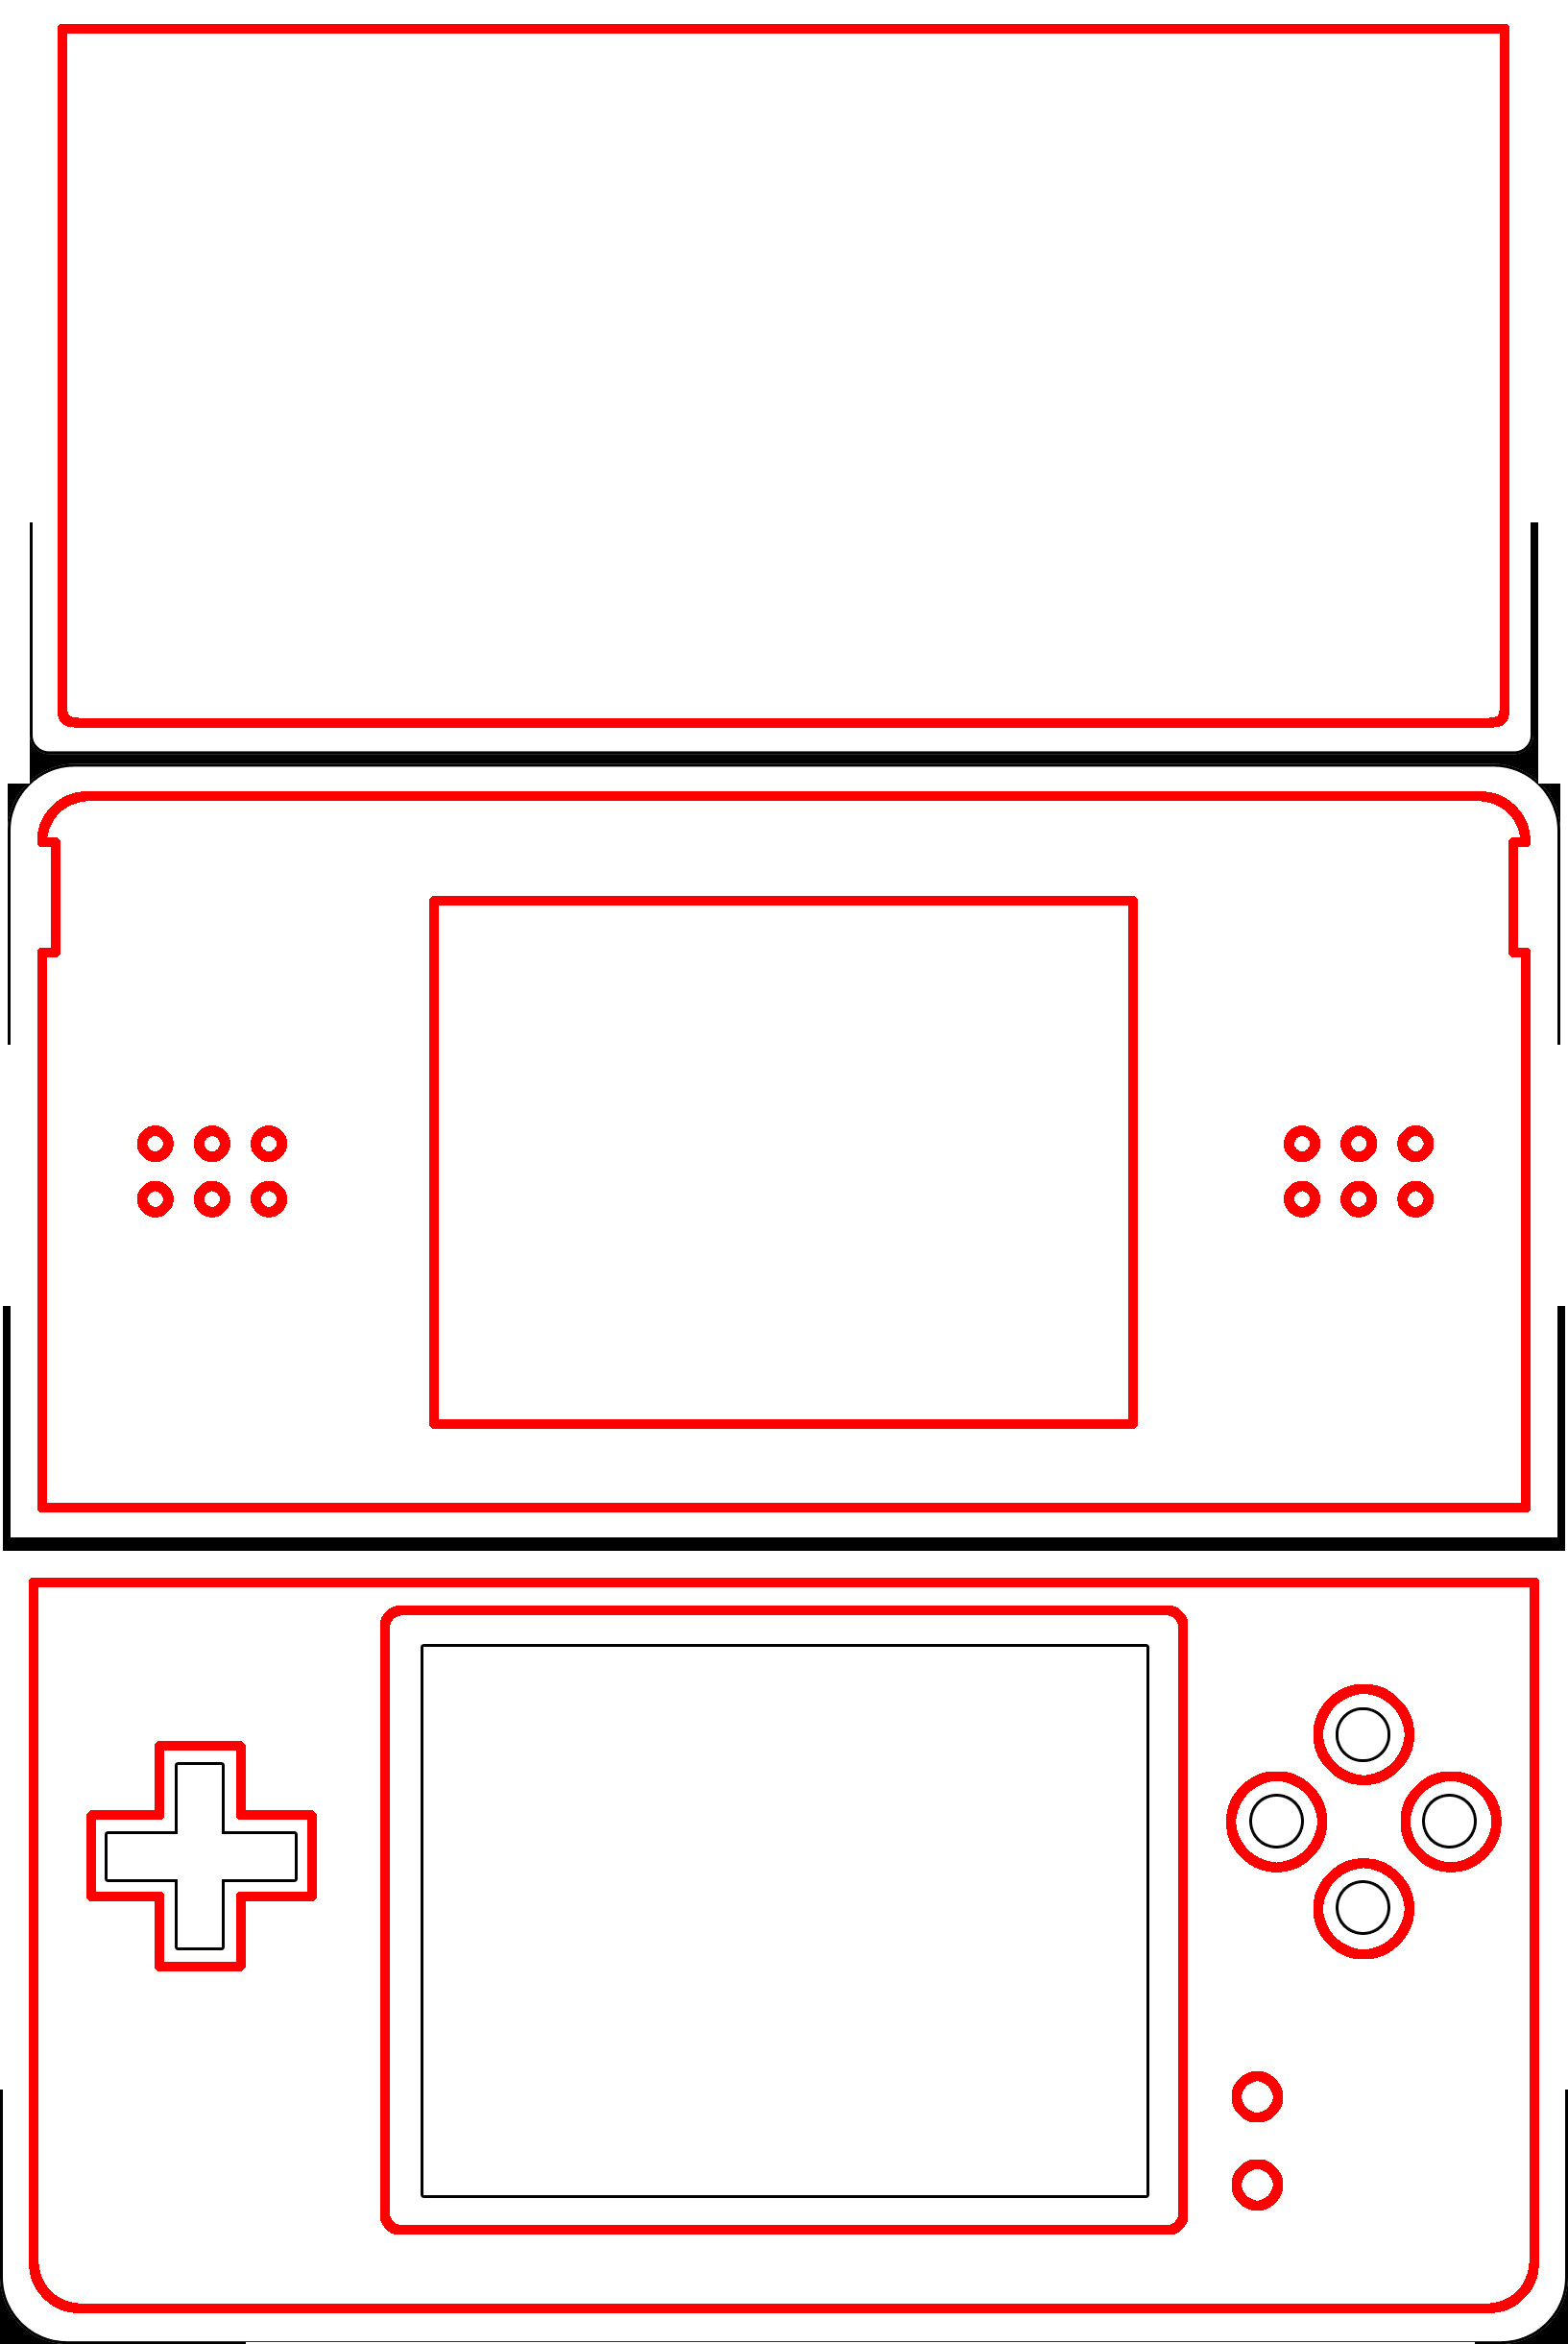 New 3ds Xl Skin Template Win A One Of A Kind Ds Skin that You Designed